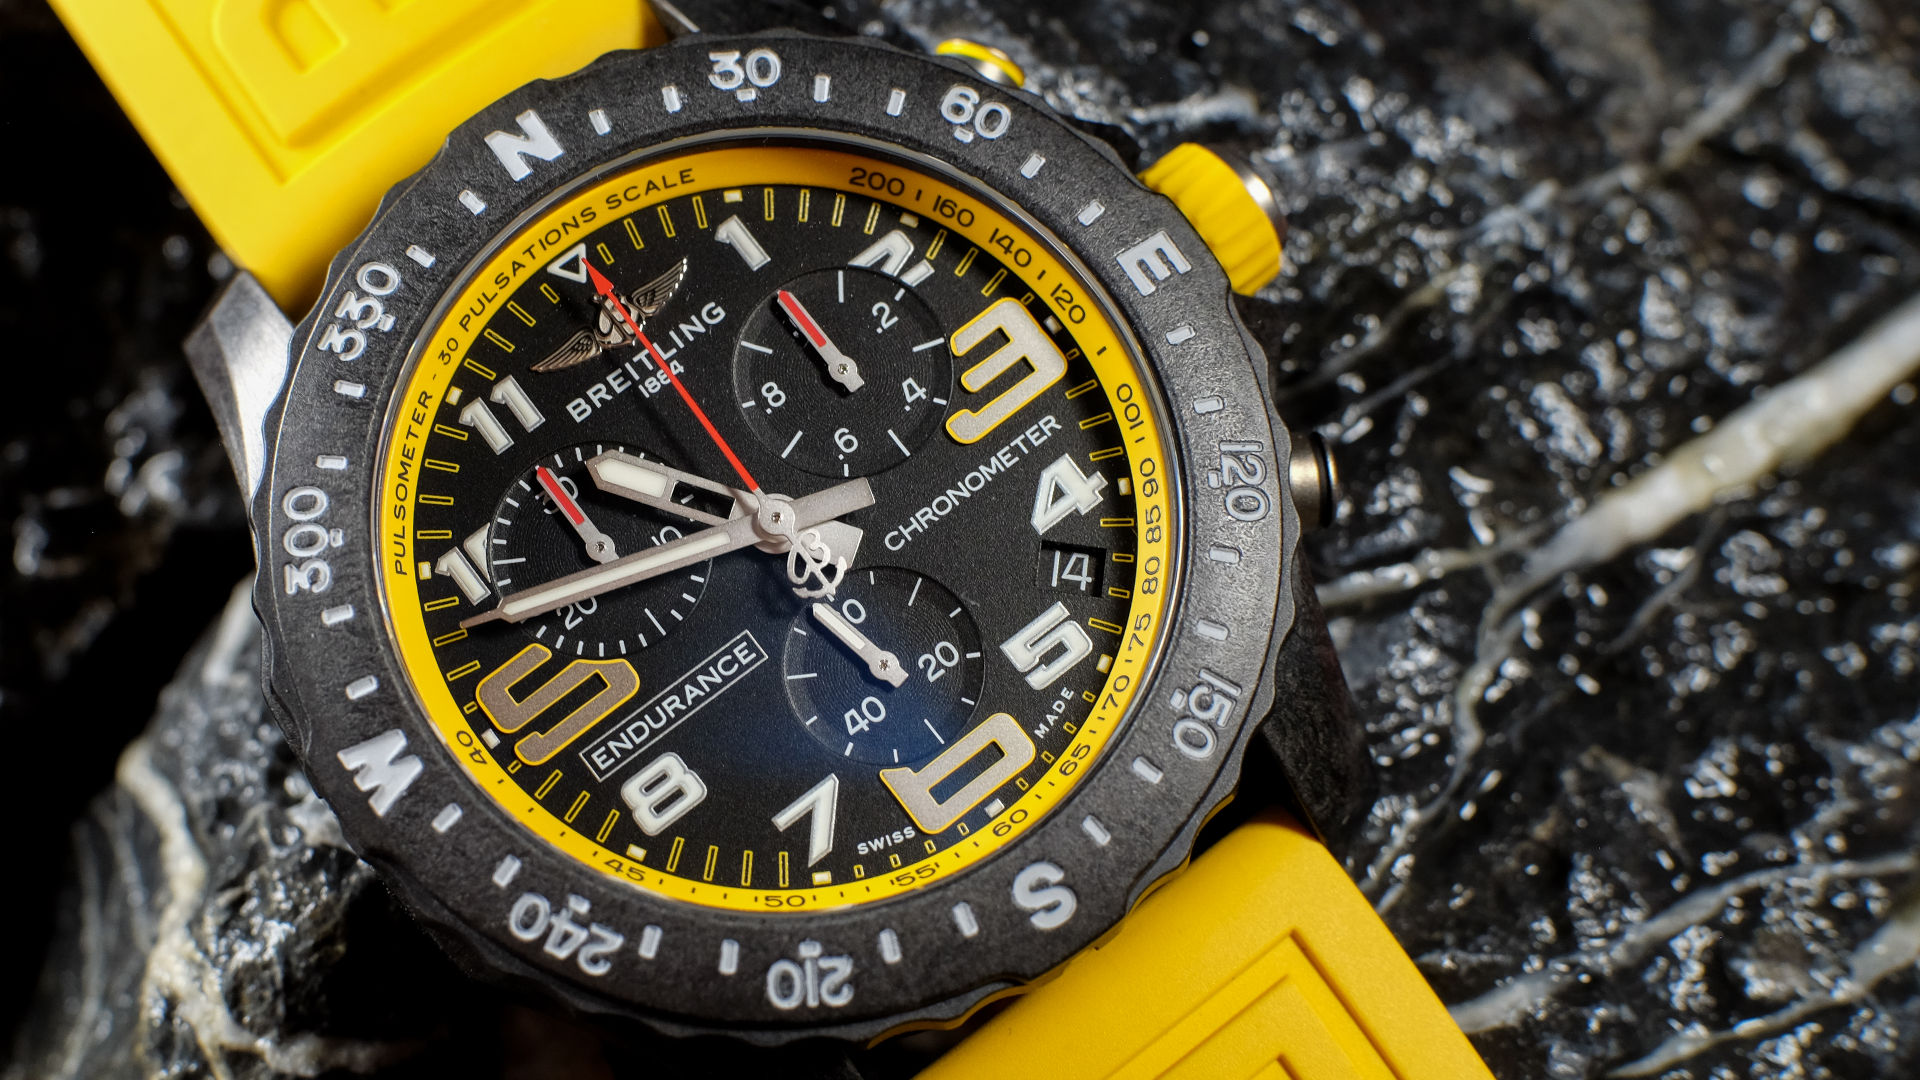 First Impressions: The Breitling Endurance Pro is a highly functional luxury sports watch